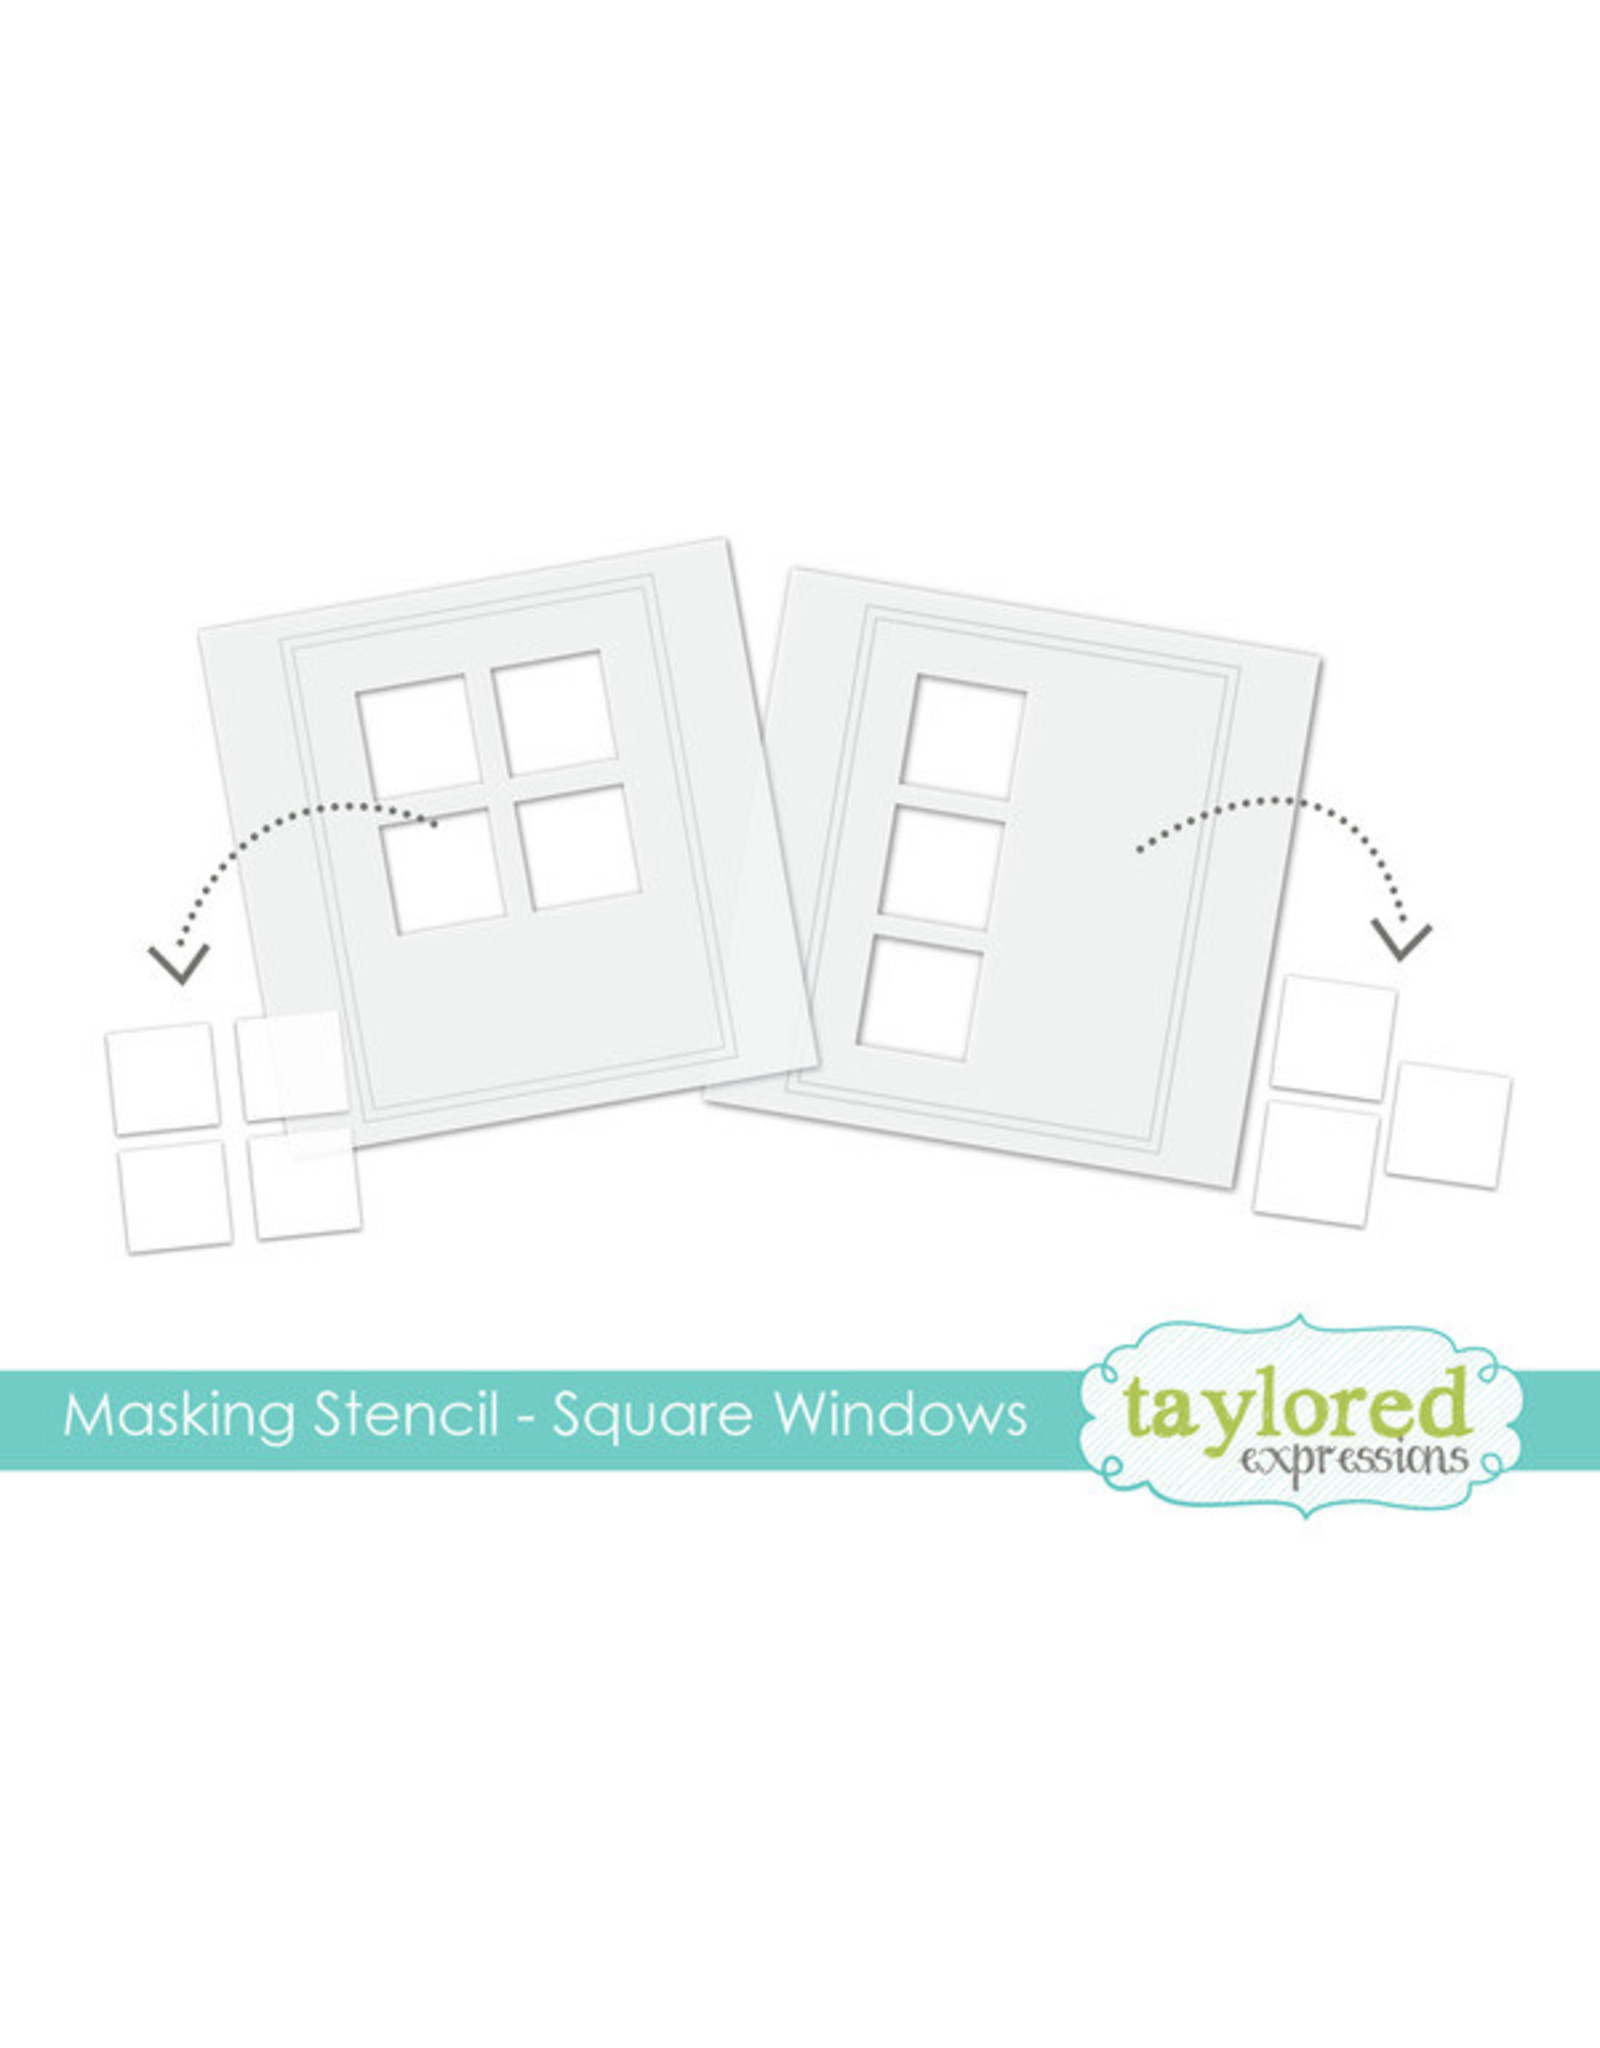 Taylored Expressions Square Windows - 6x6 Designer Masking Stencil